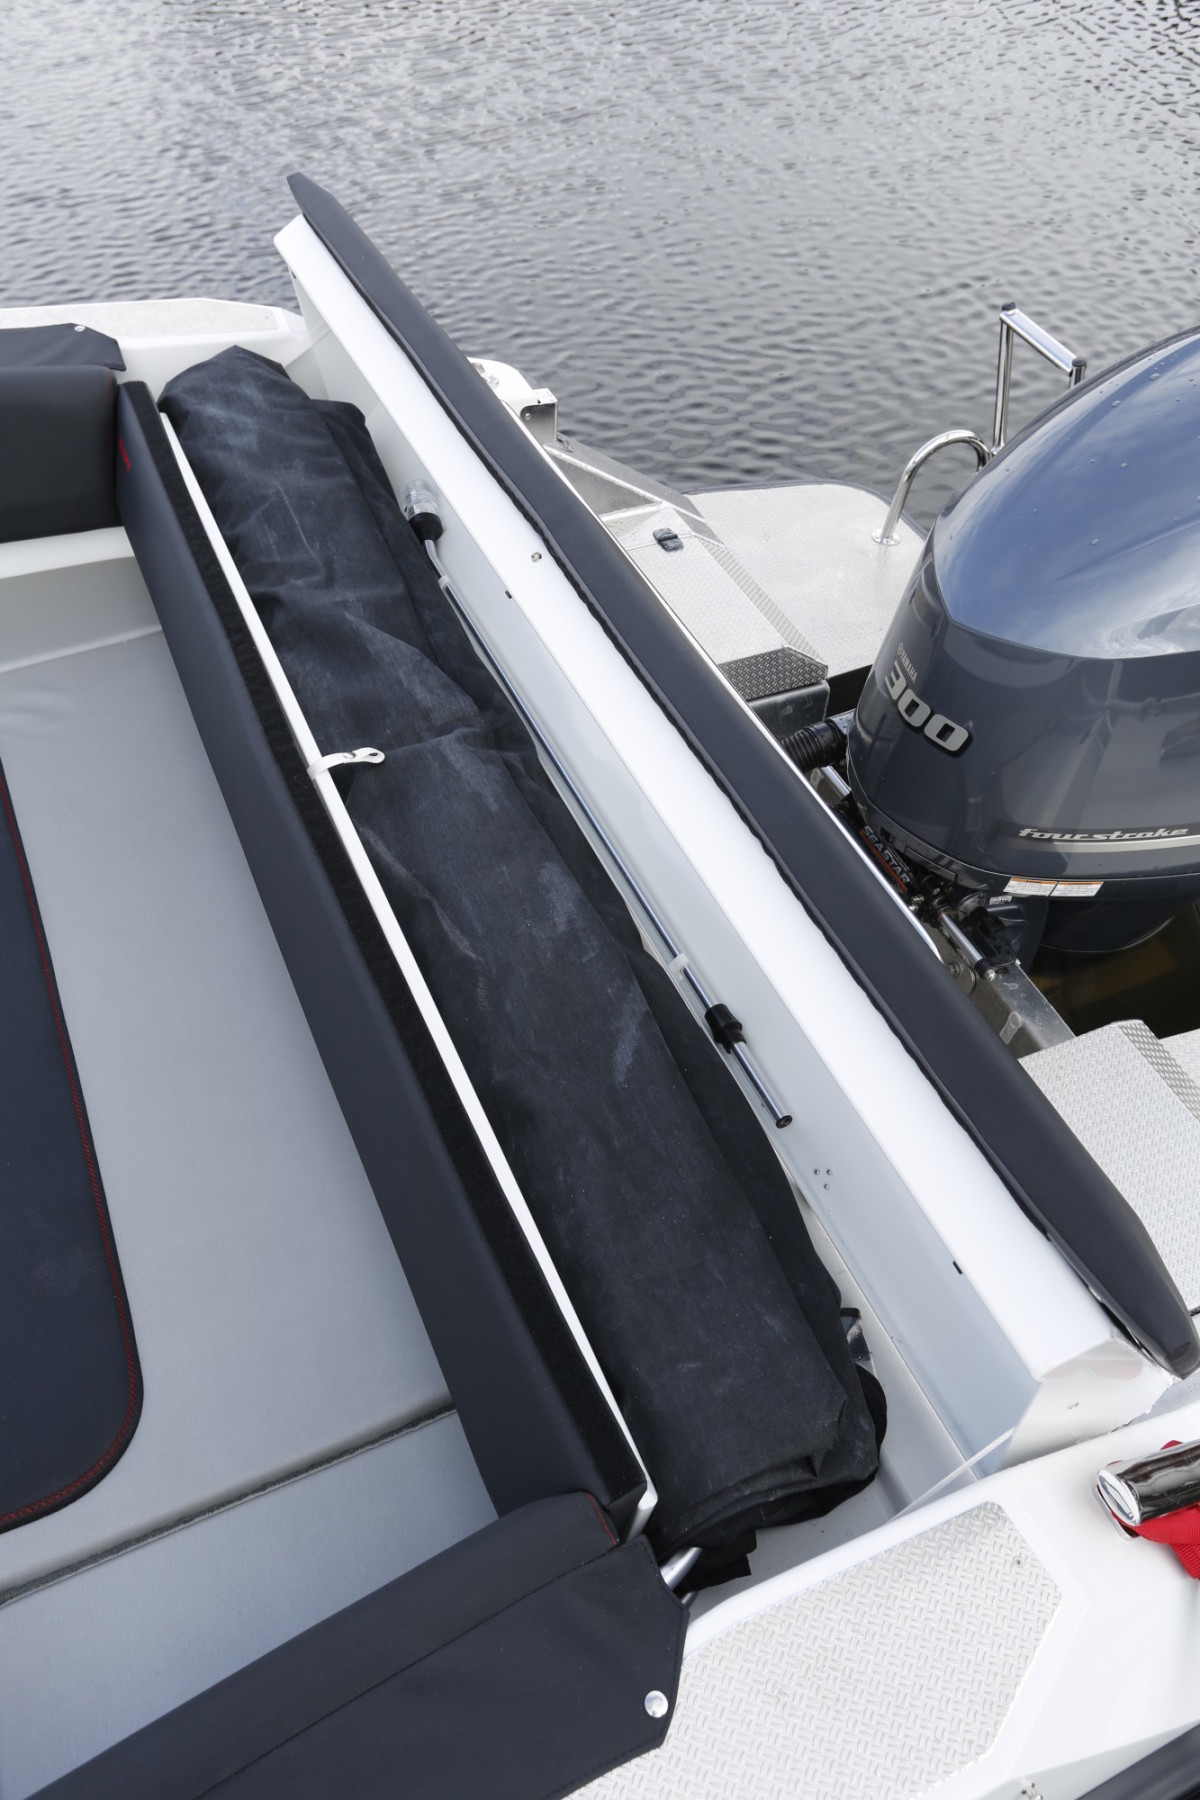 Husky Boats By Finnmaster R8 R Series Idealboat Com